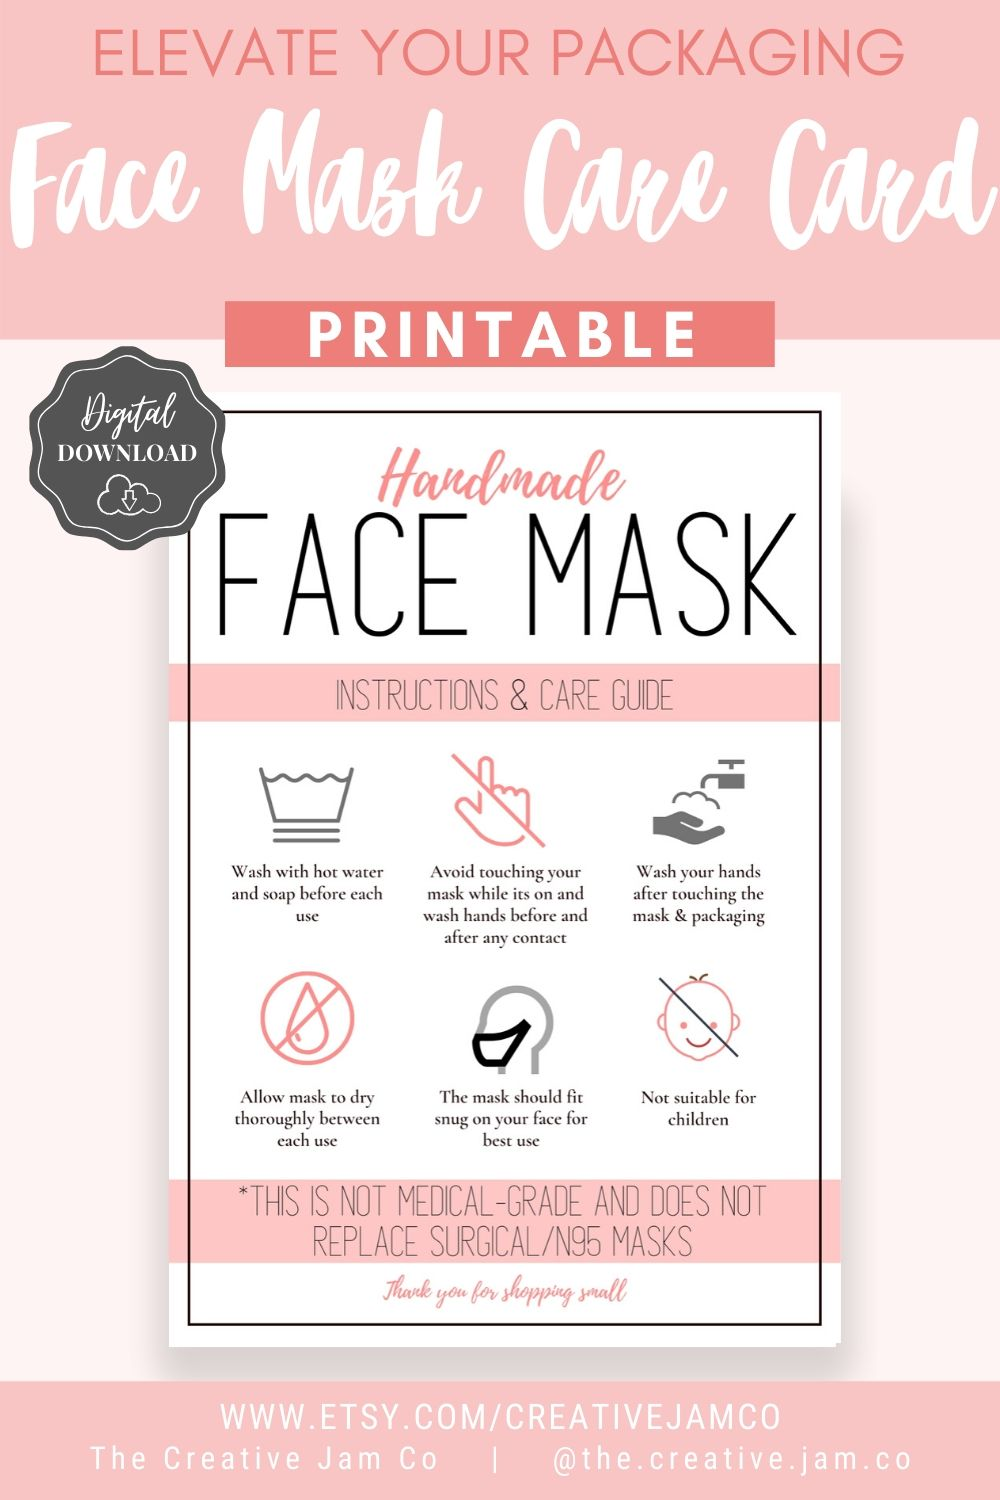 Face Mask Label Care Card How To Handle Order Card Face Mask Printable Instructions Business Labels Face Mask Seller Package Label Tag Face Mask Fashion Face Mask Diy Face Mask